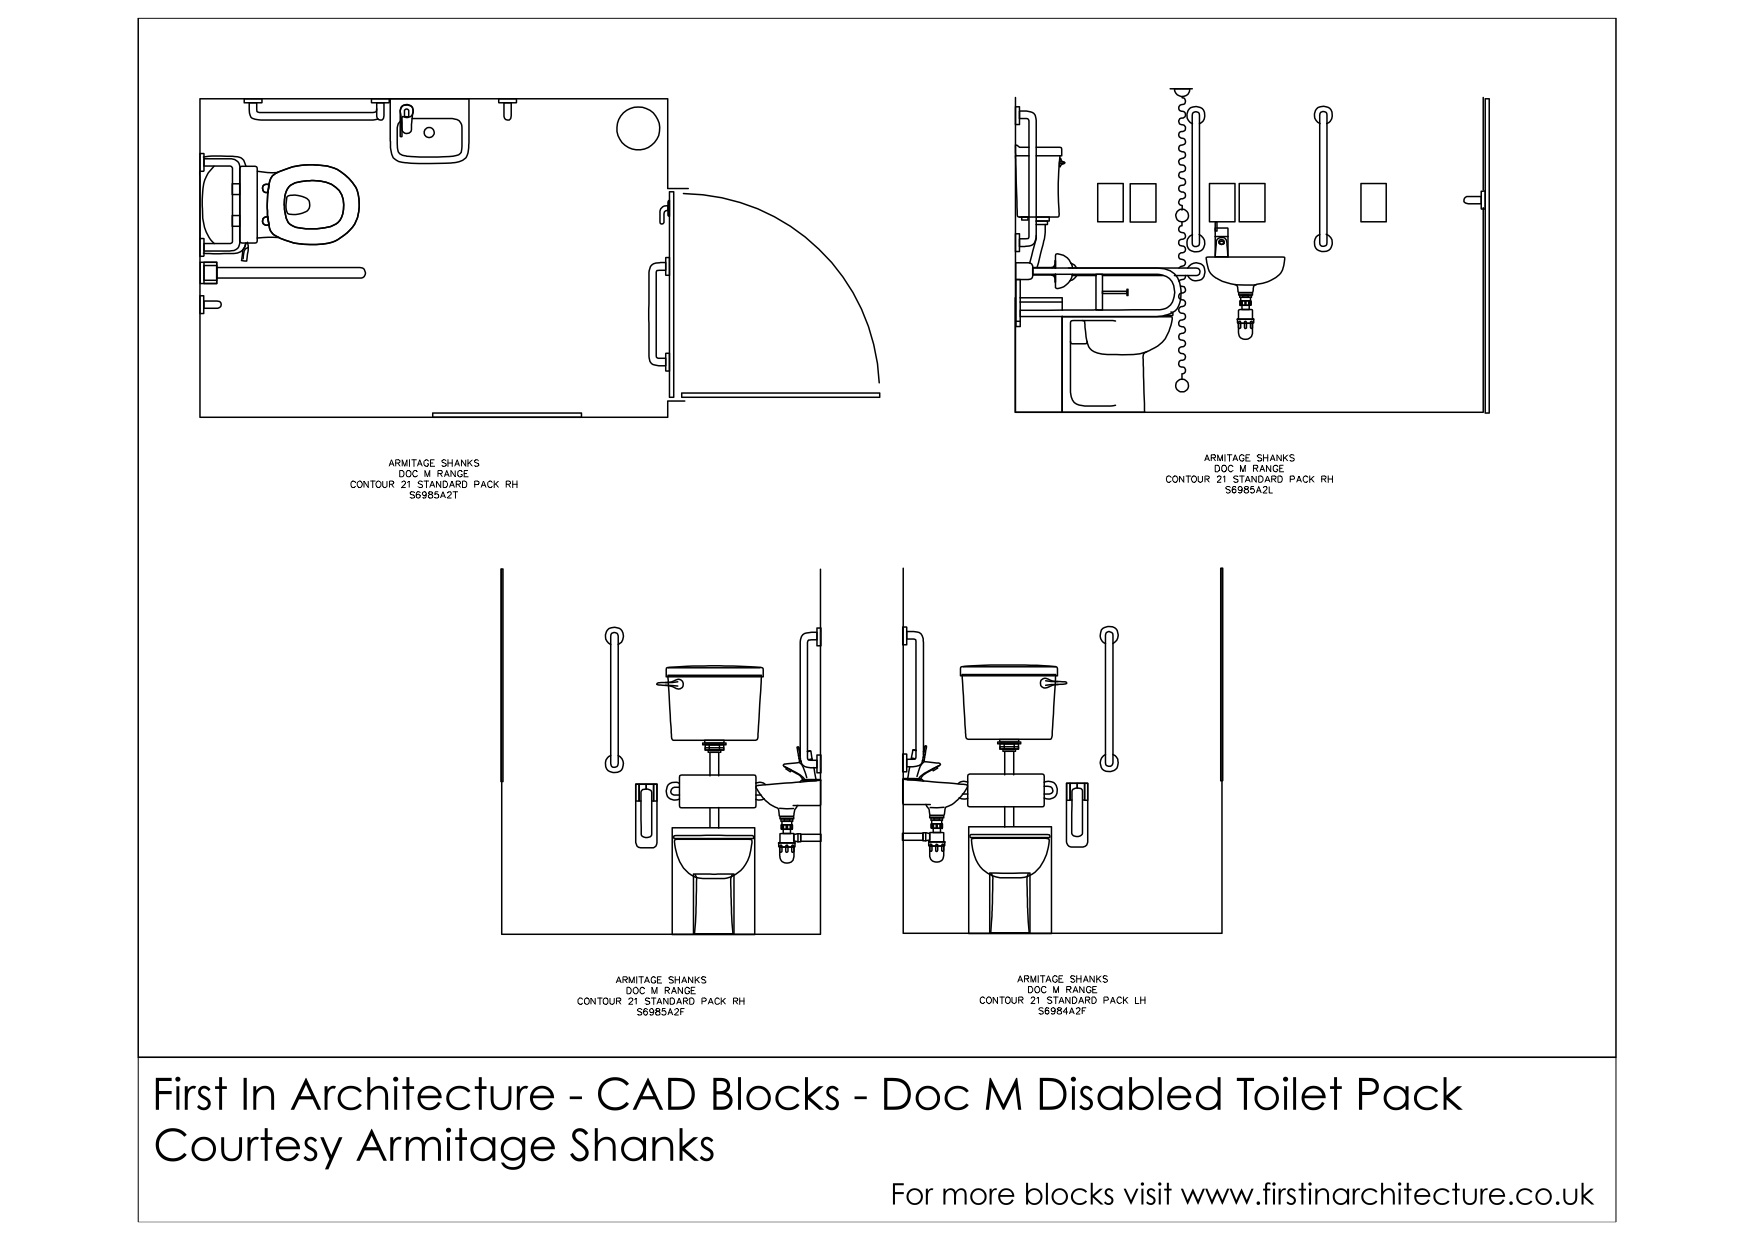 Free Cad Blocks Doc M Disabled Toilet First In